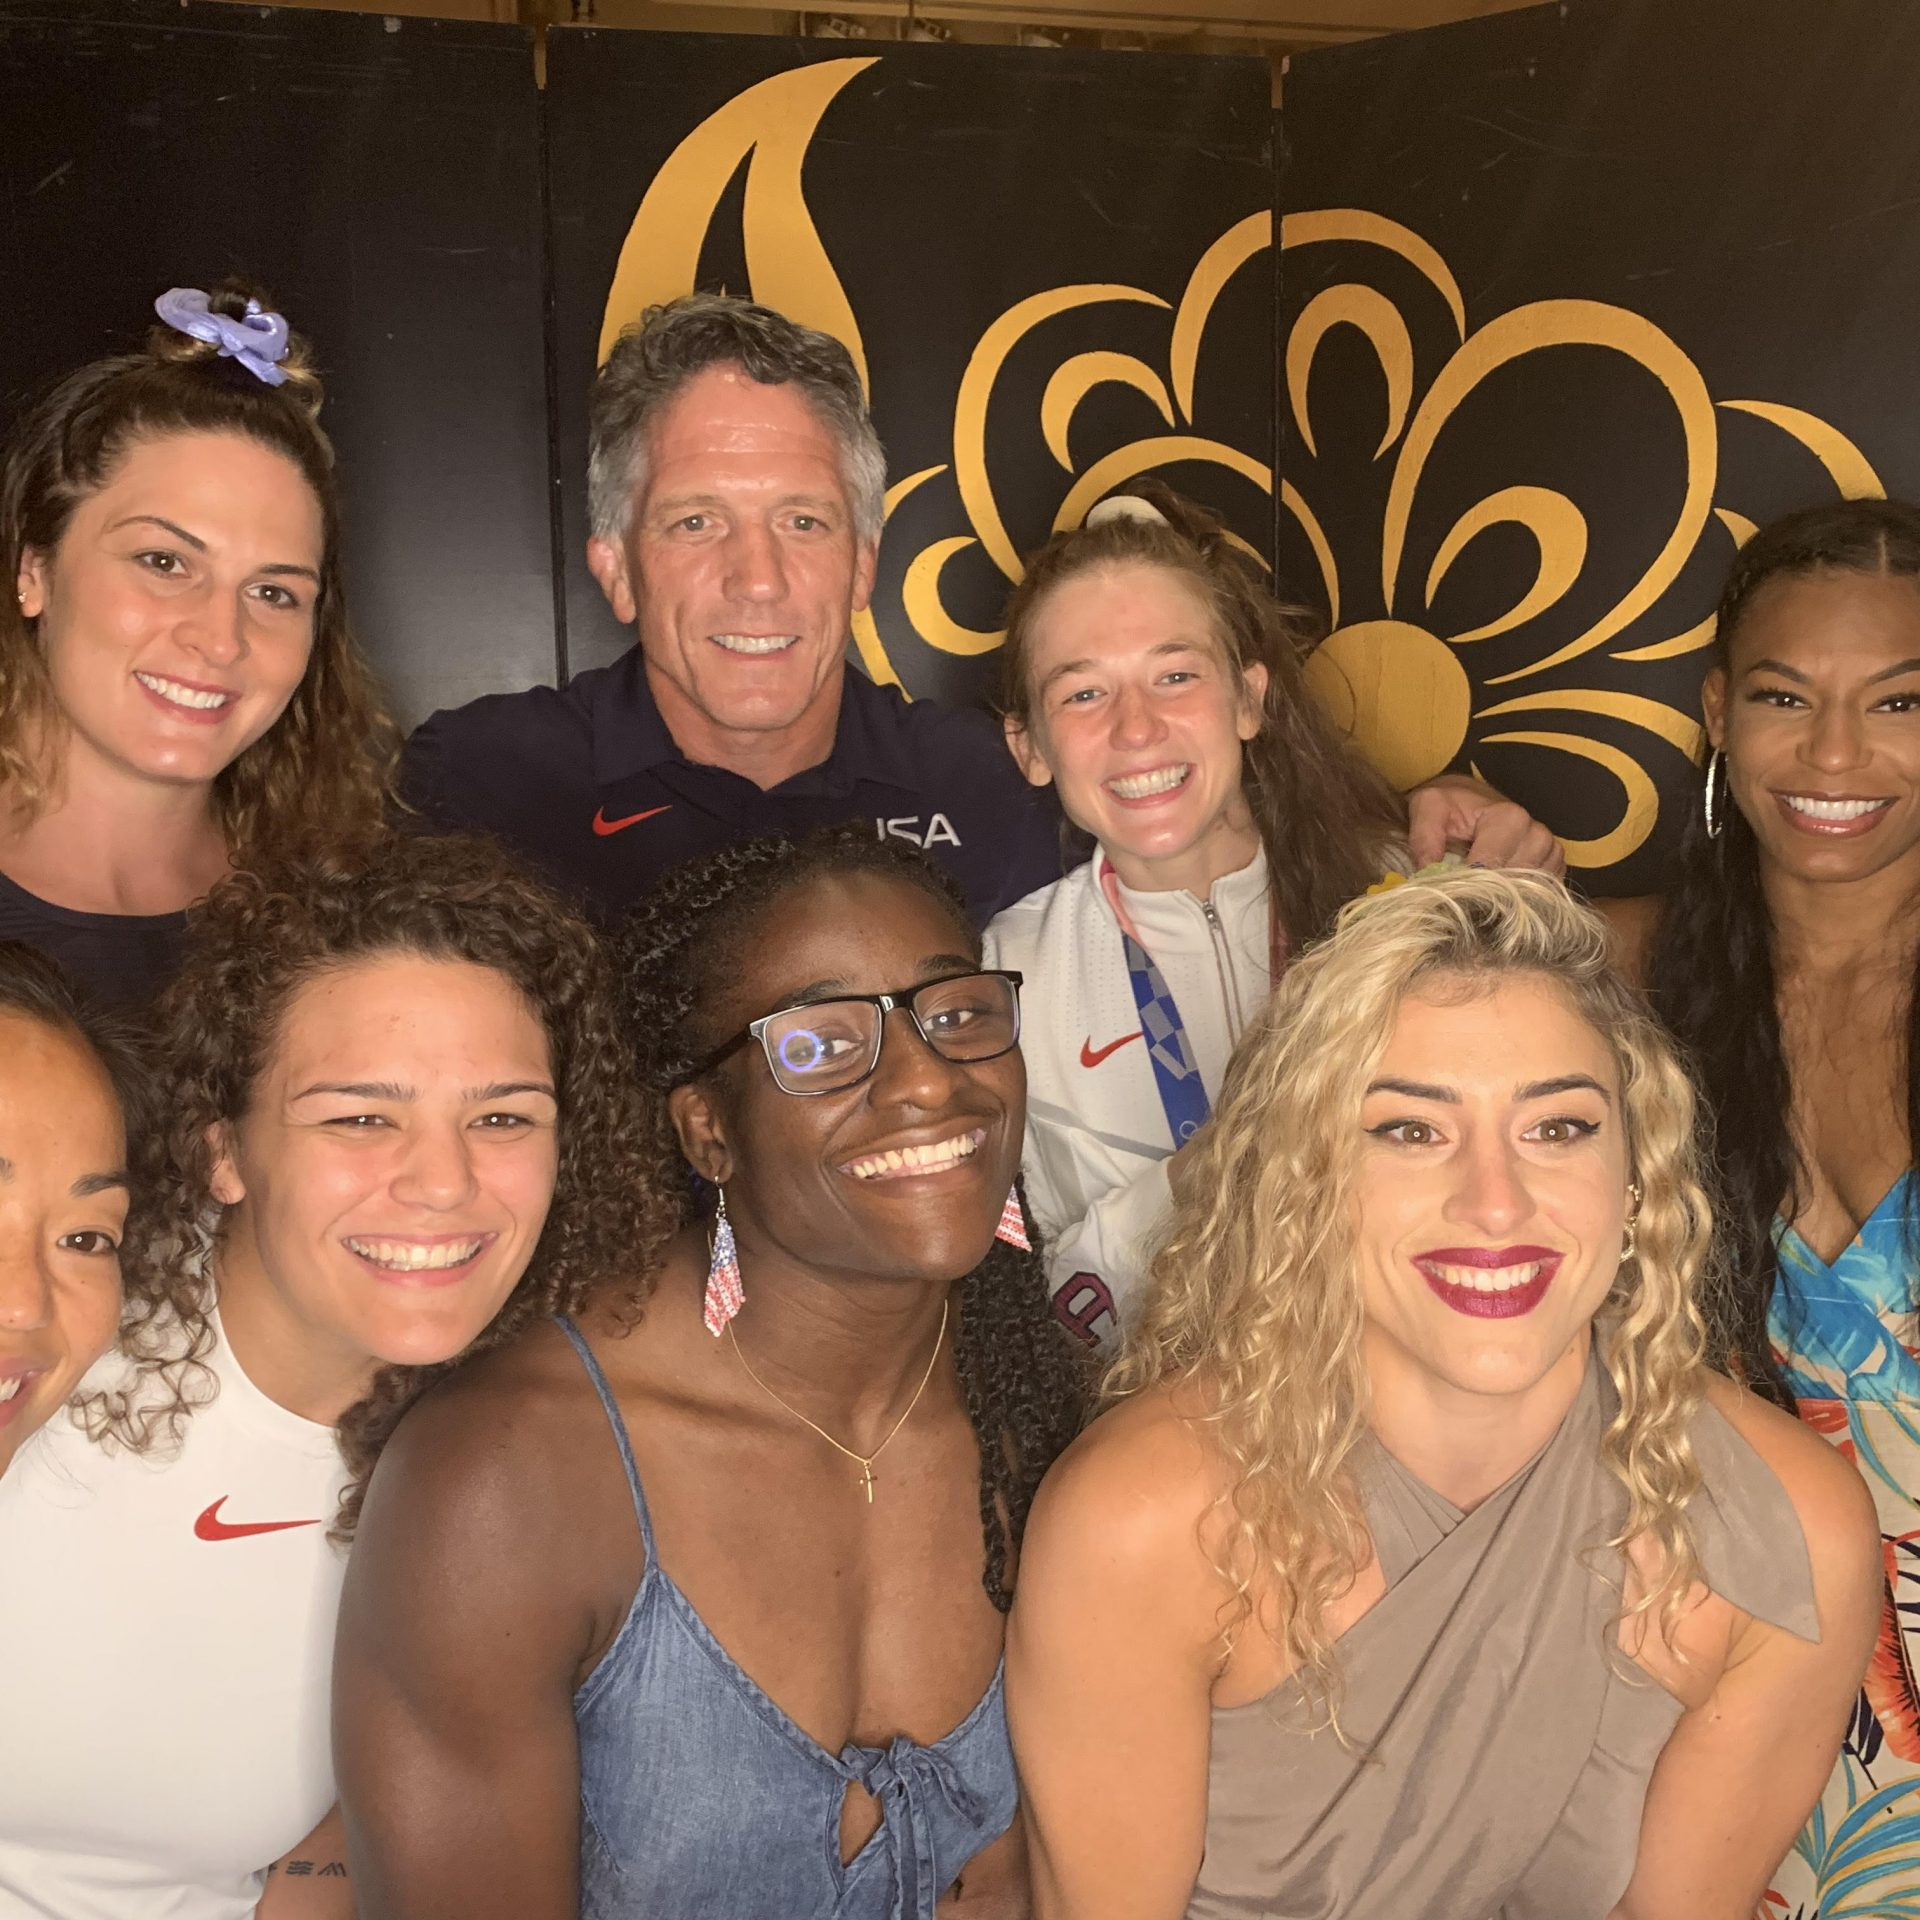 2020 women wrestling team on night out